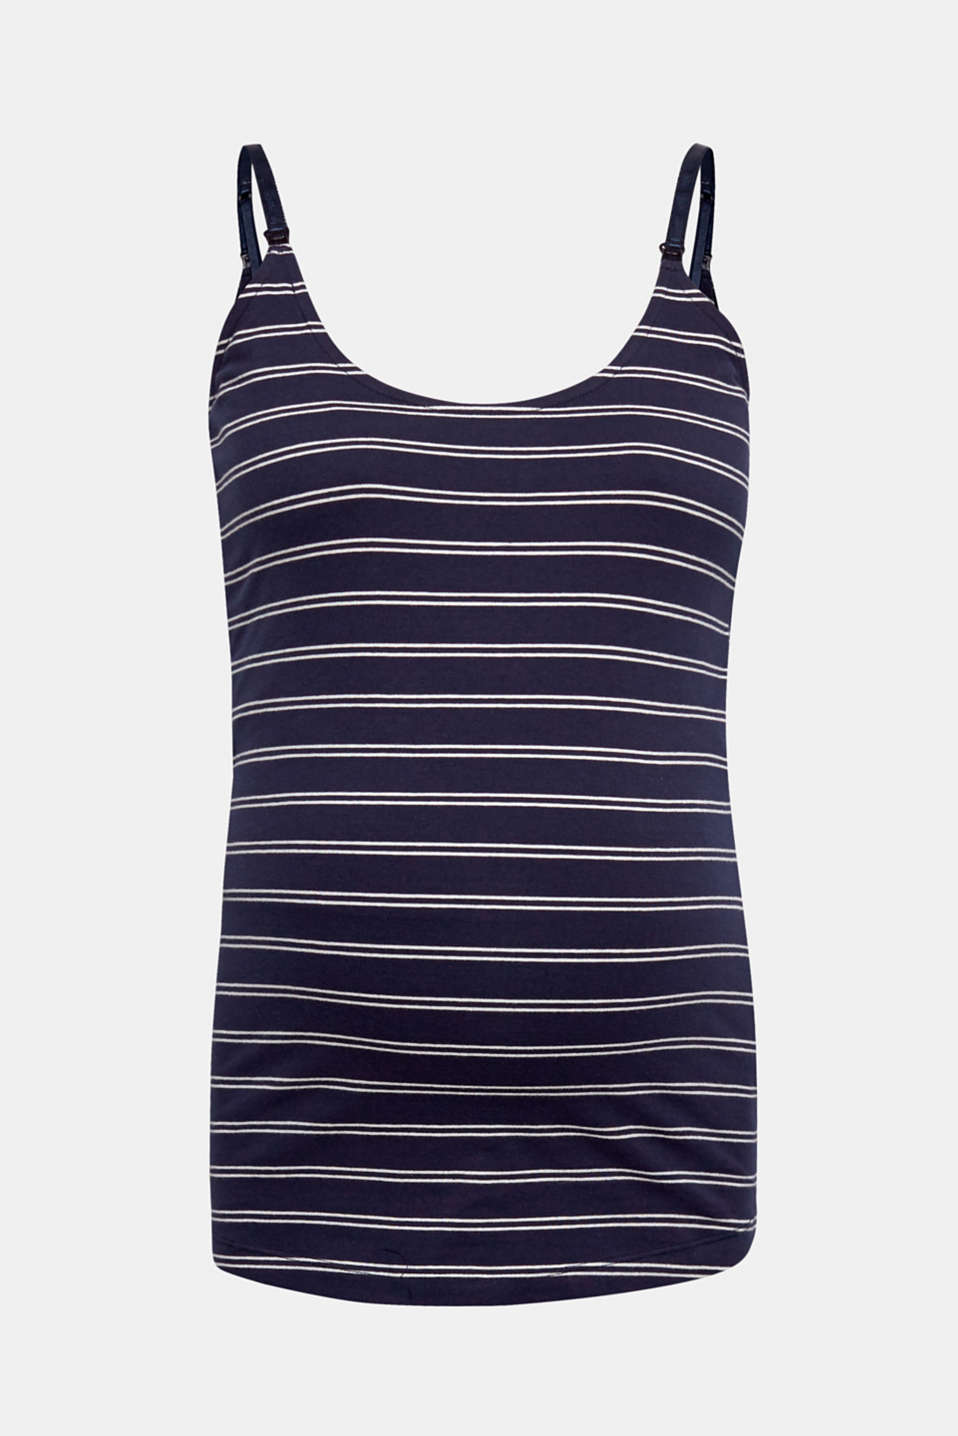 Practical nautical look: the front-opening straps on this stretch top made of premium, environmentally-friendly organic cotton with a lovely stripe pattern make nursing child's play!